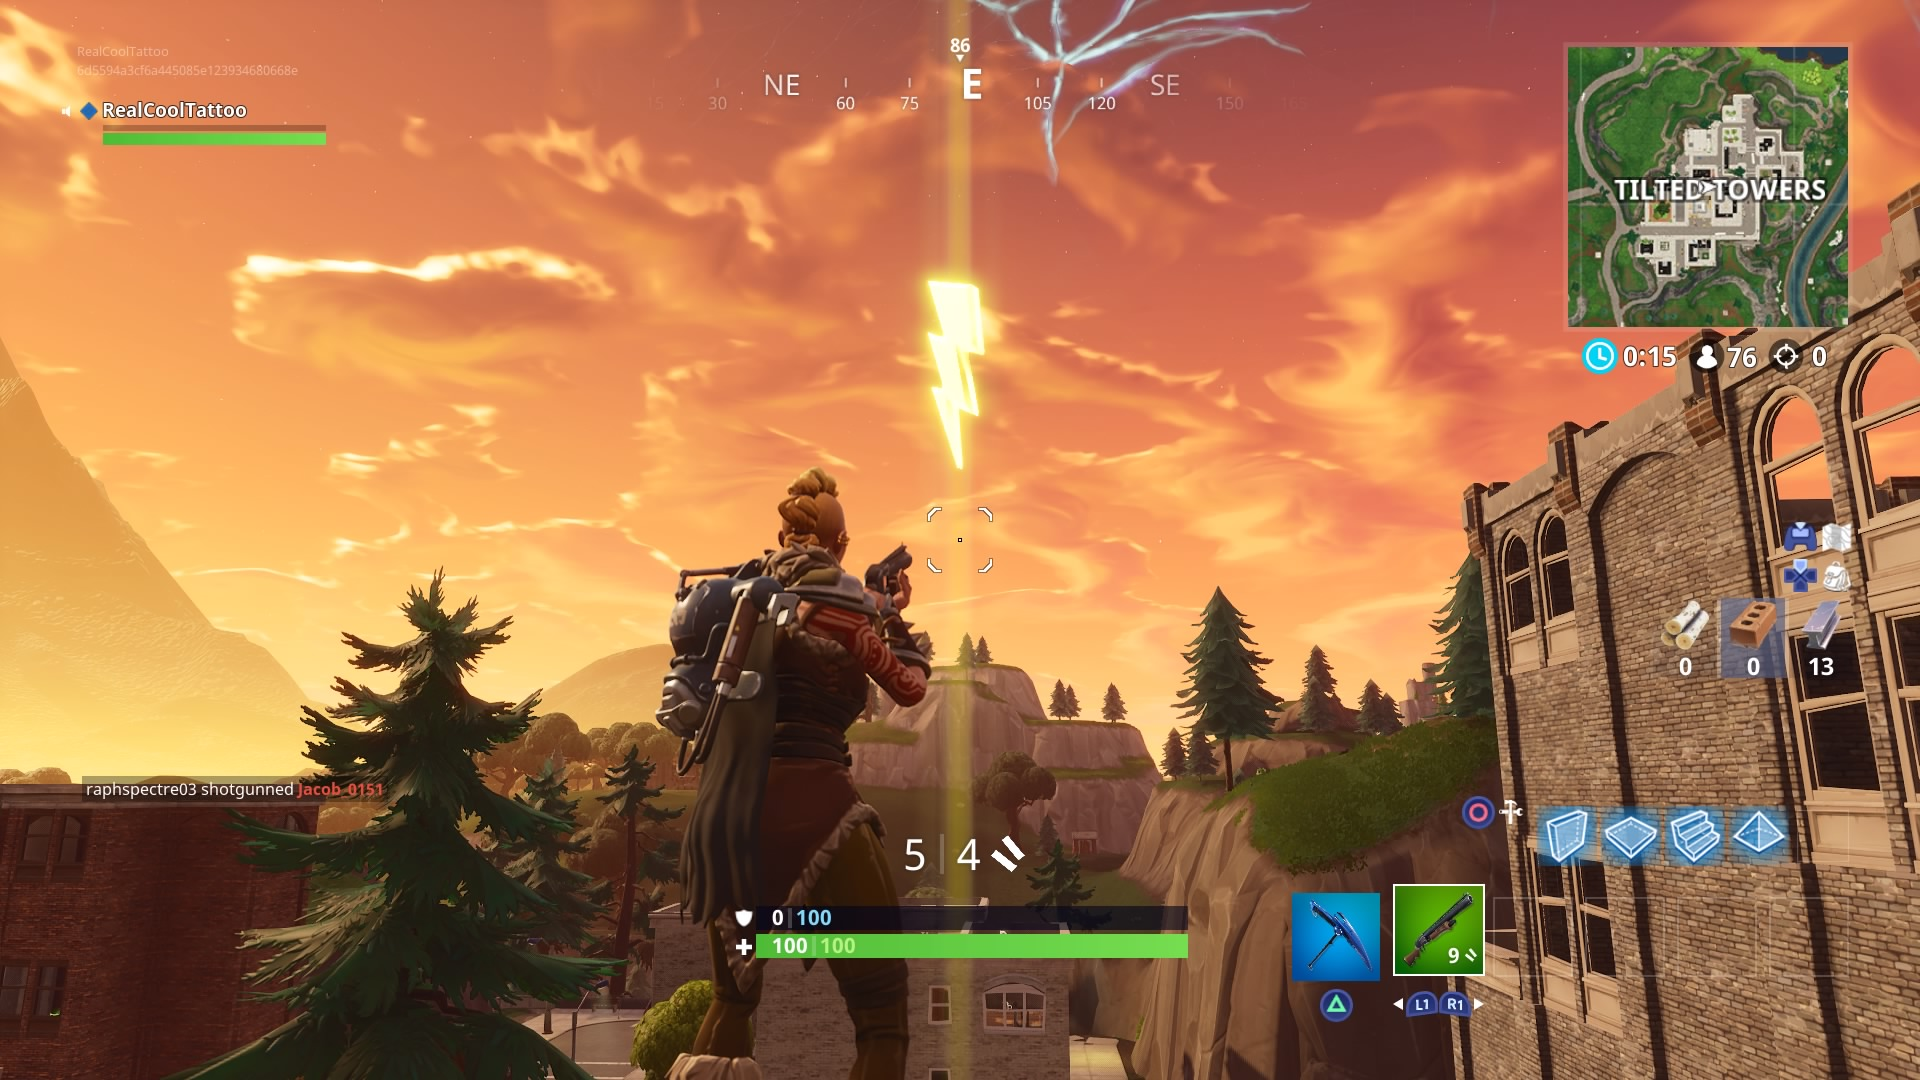 With The Start Of Season  Weve Got An Electrifying New Challenge To Contend With Heres How To Search Floating Lightning Bolts Around The Map